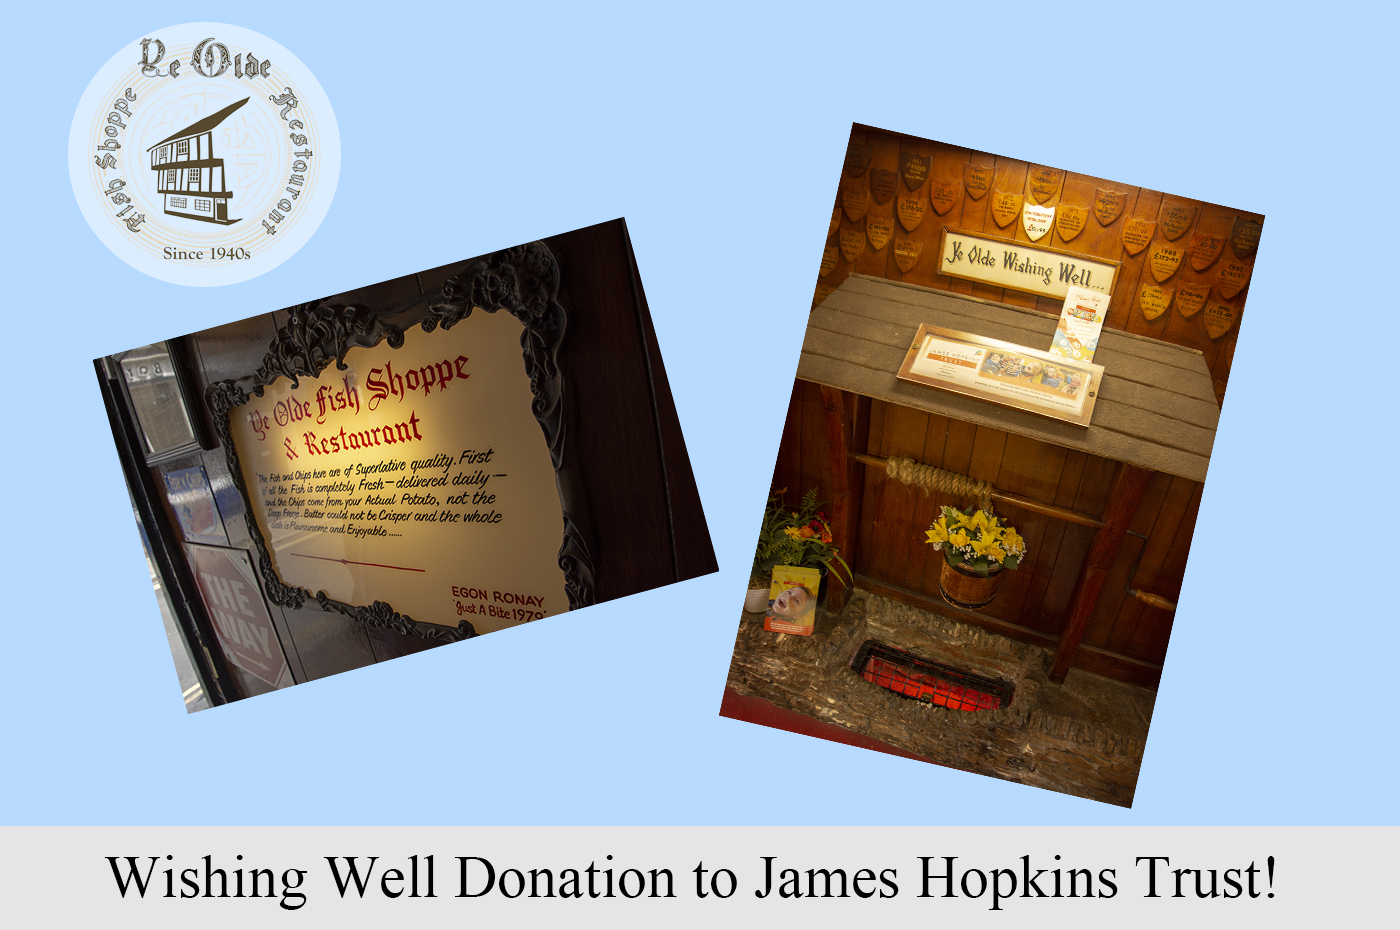 Wishing Well Donation to James Hopkins Trust!